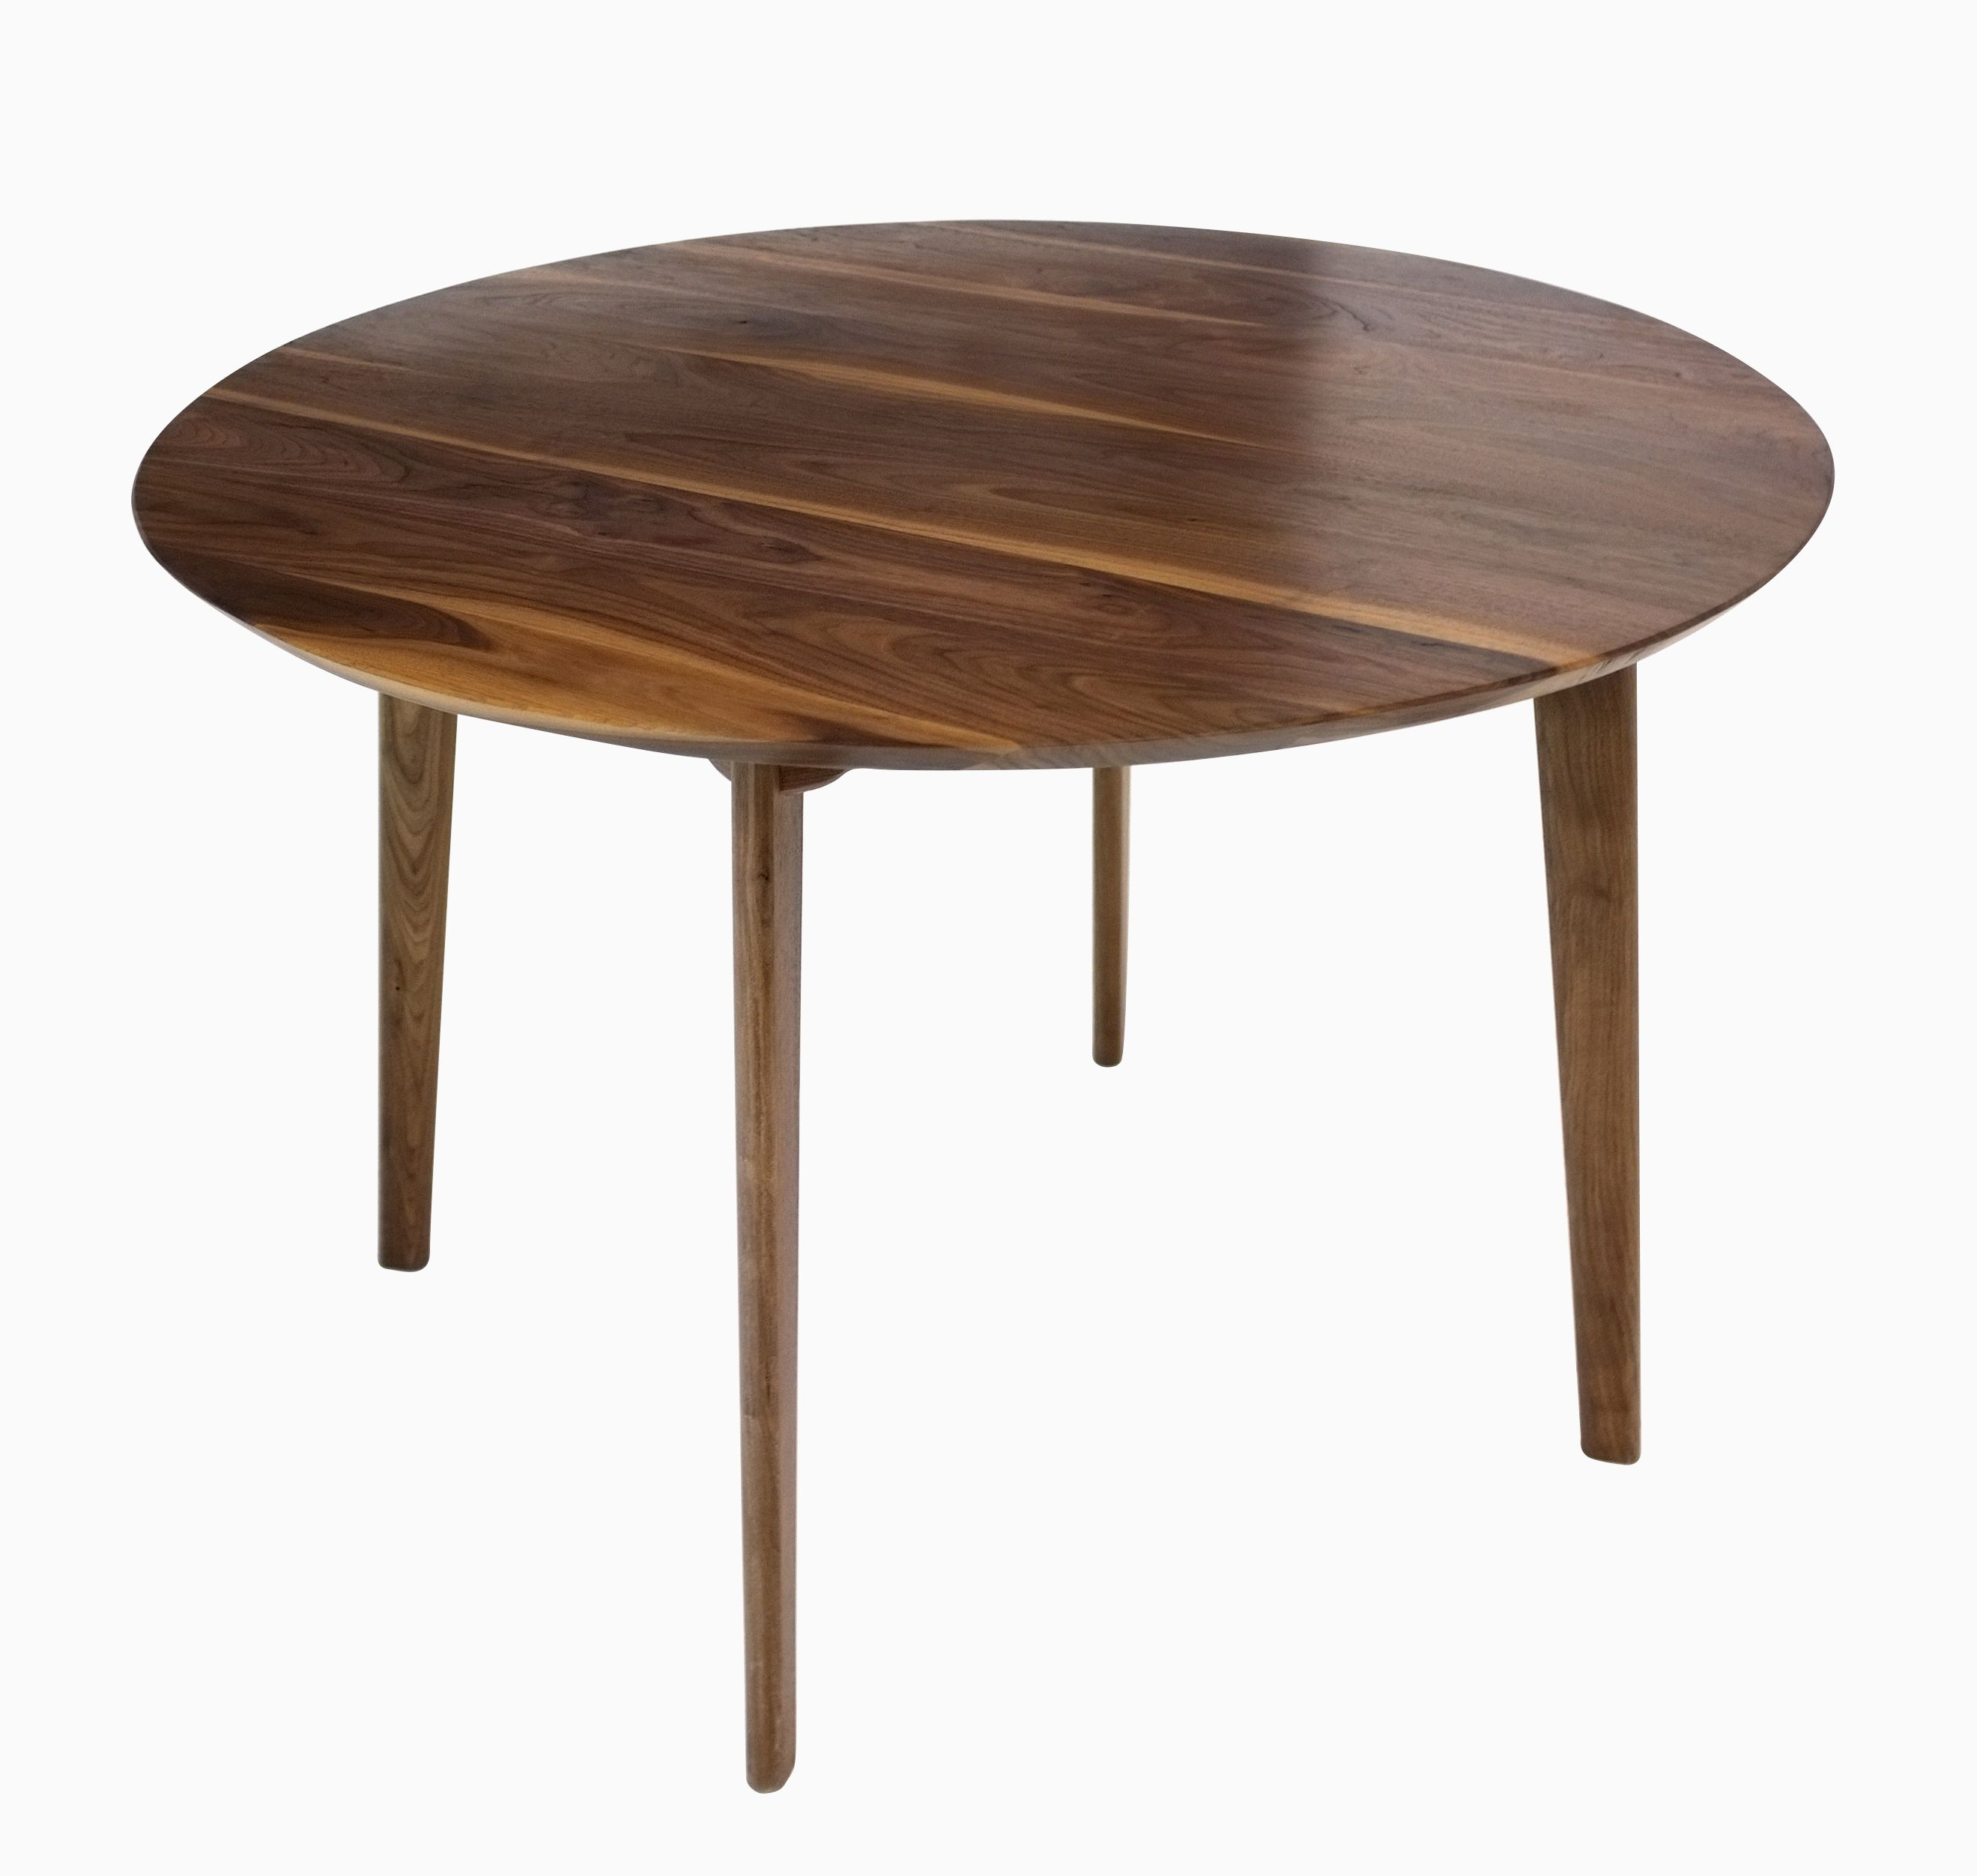 Buy a custom made isabelle mid century modern solid round for Buy round table